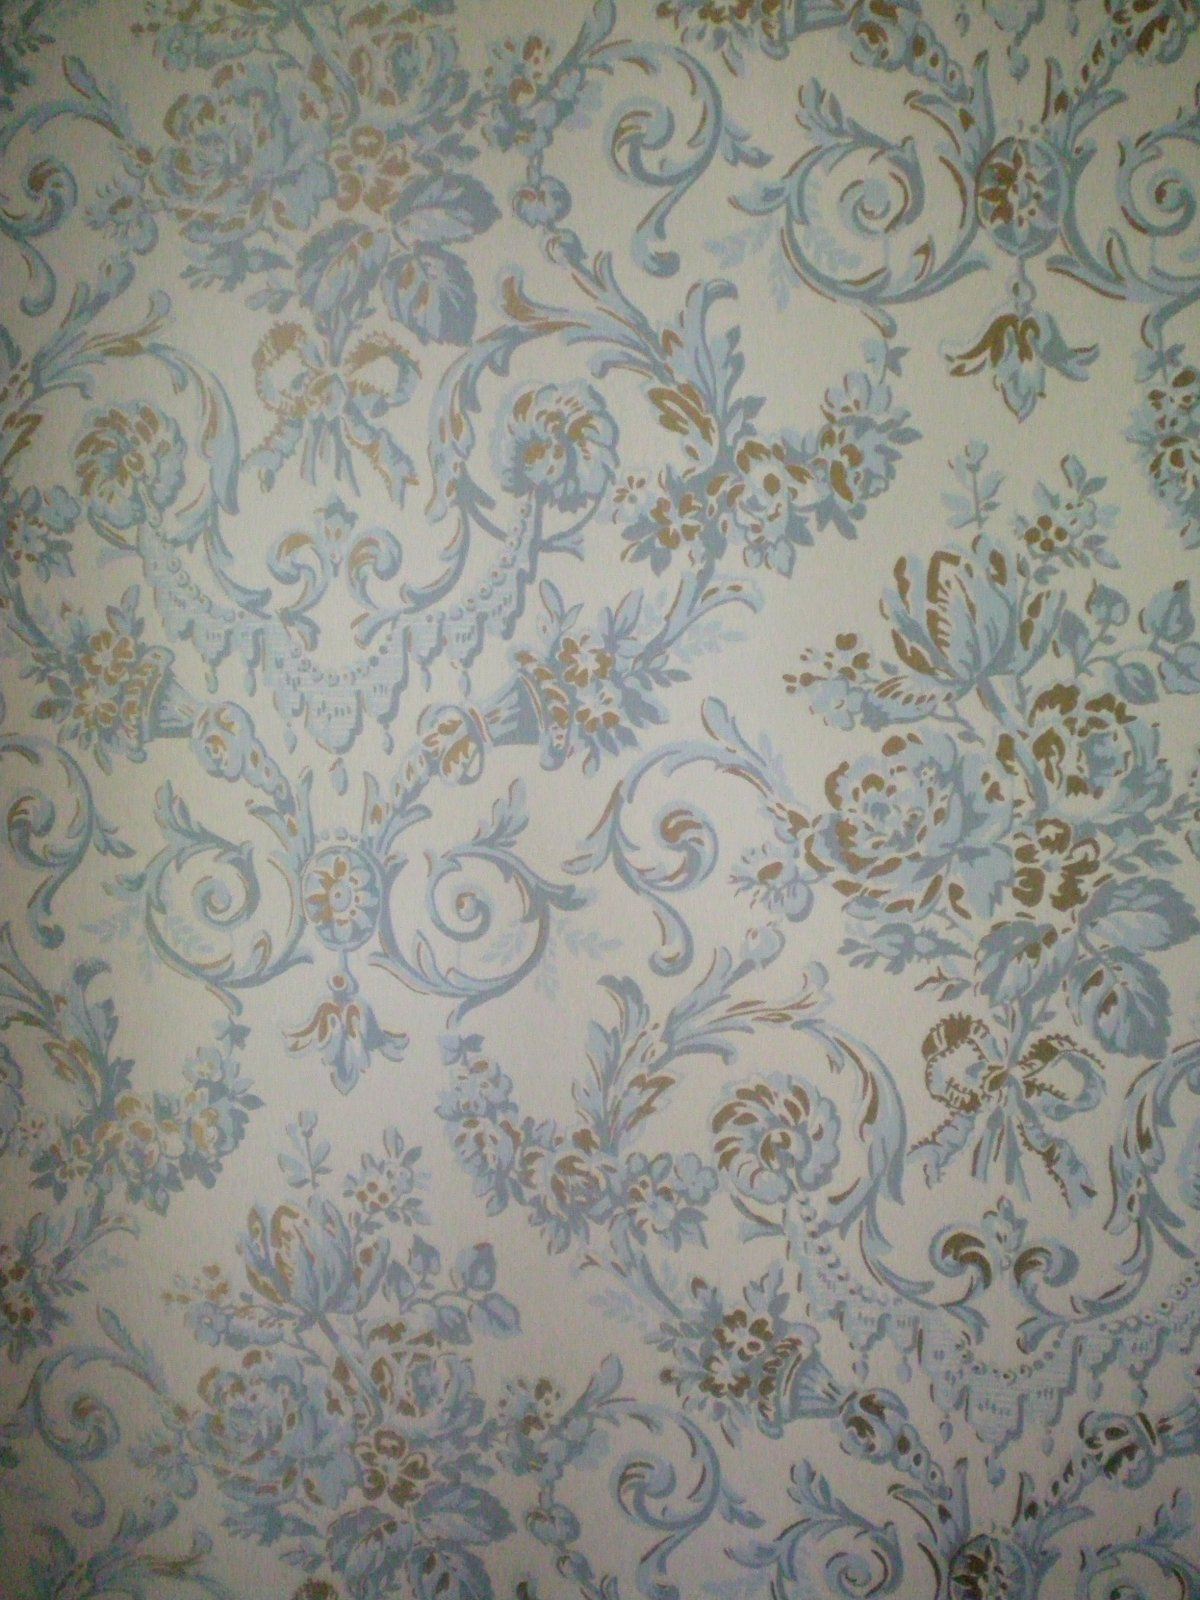 Victorian wallpaper I Want to be a Pin Up